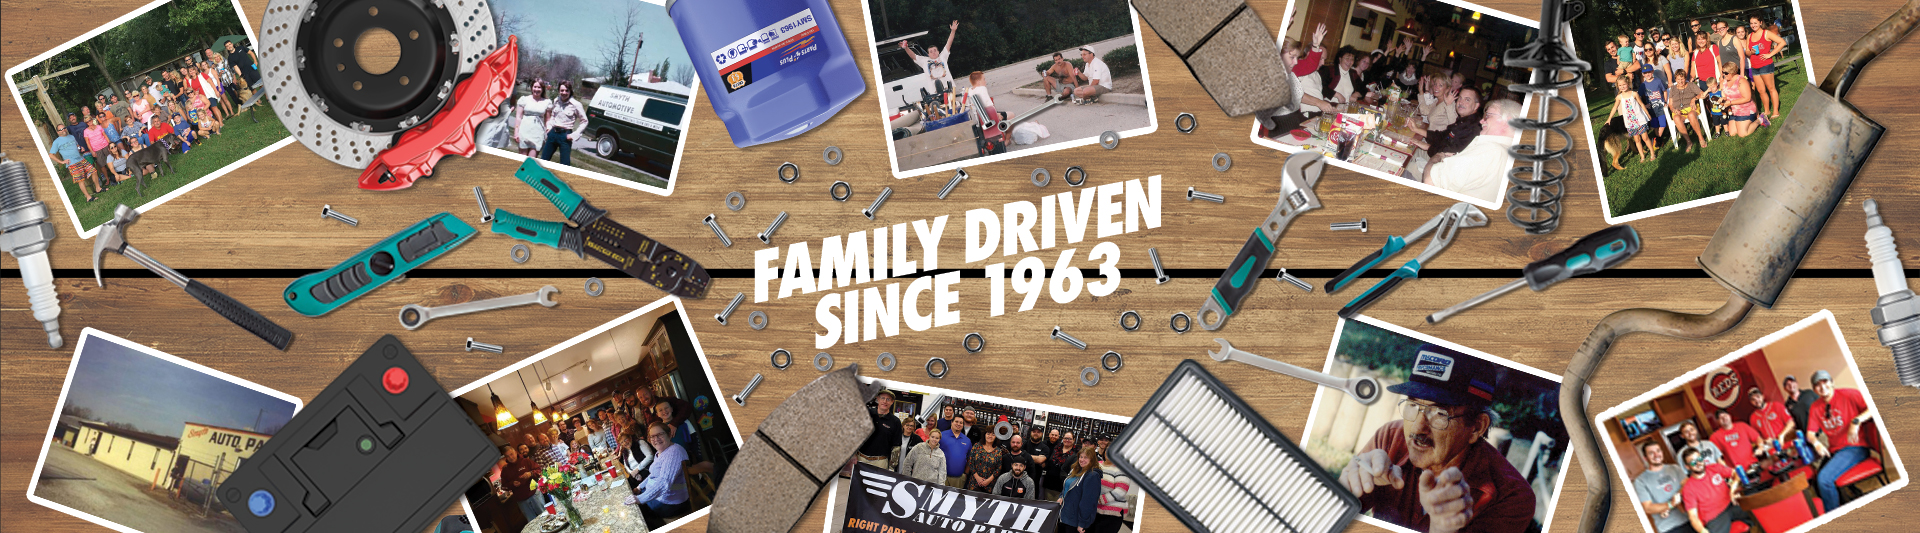 Family Driven since 1963